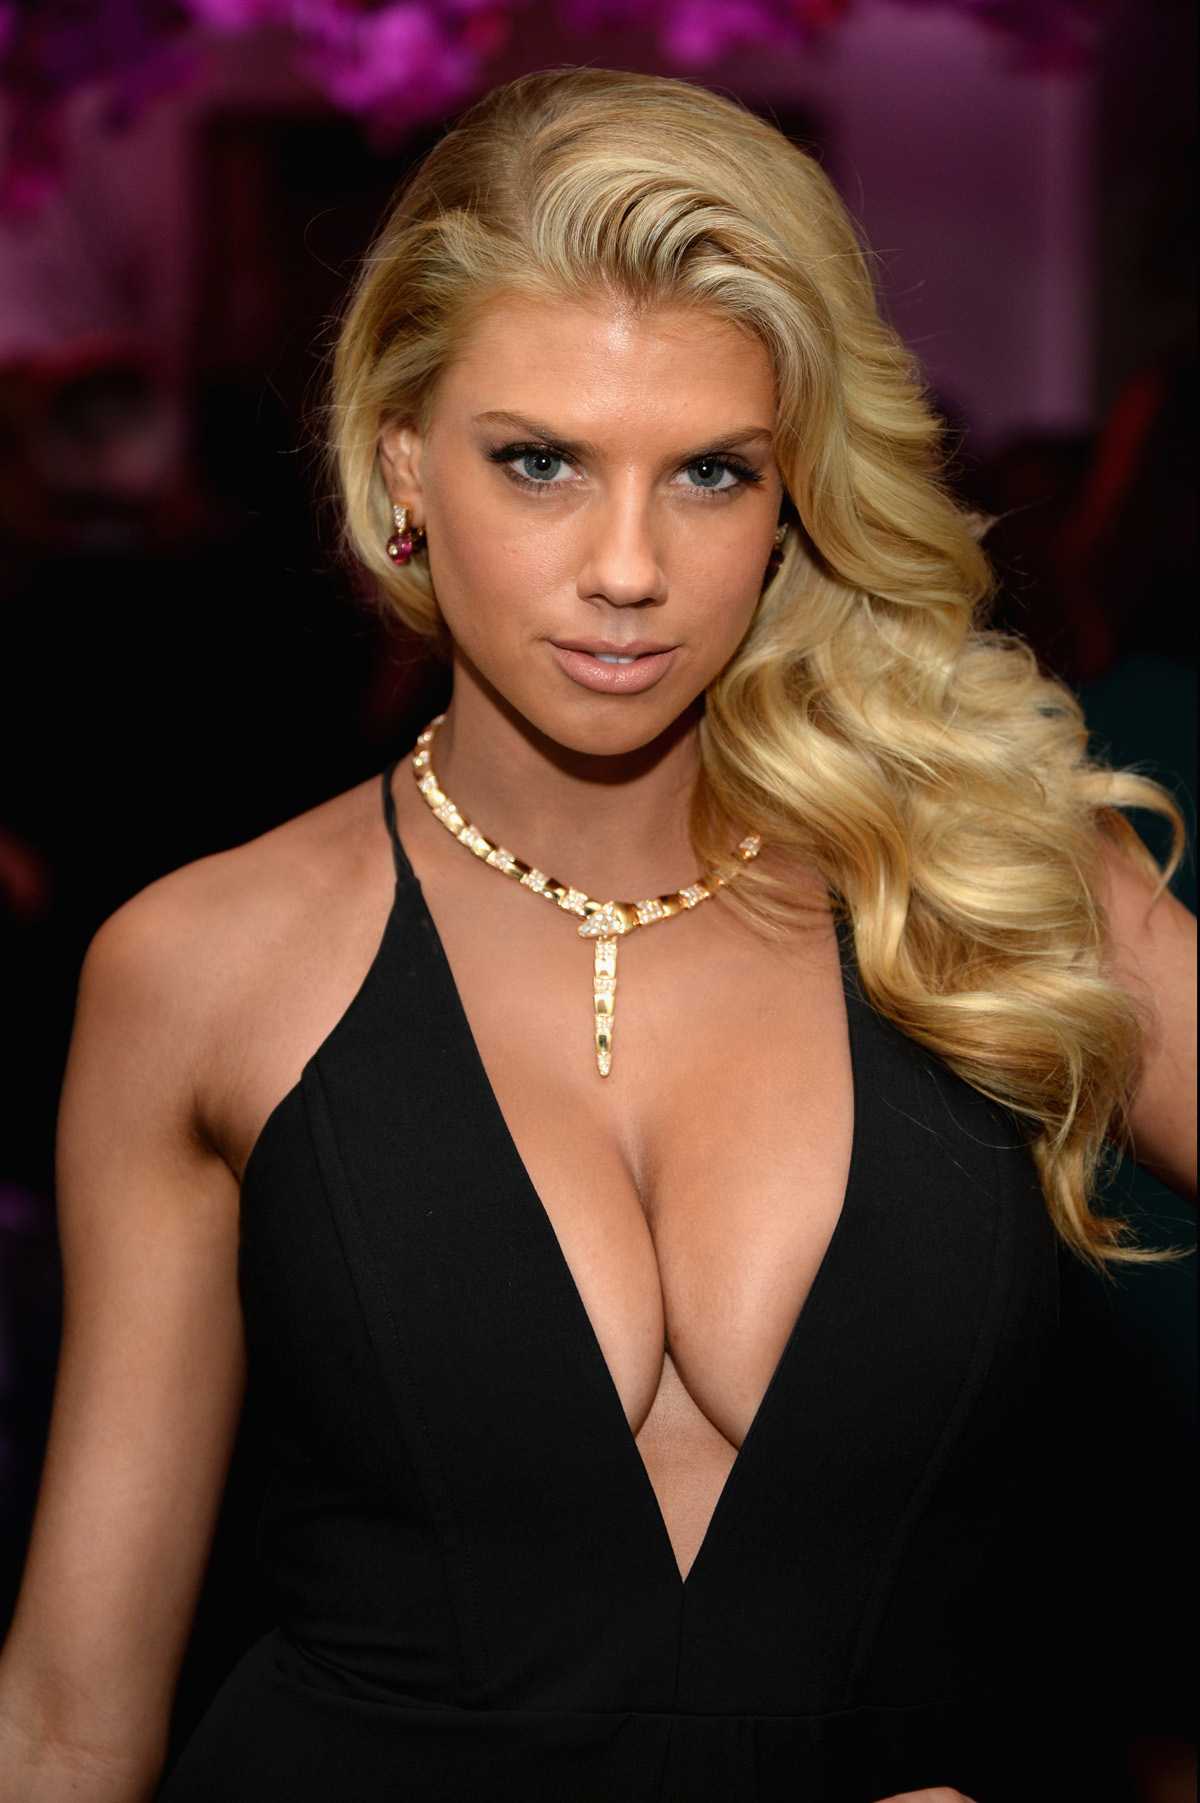 Charlotte McKinney earned a  million dollar salary, leaving the net worth at 1 million in 2017